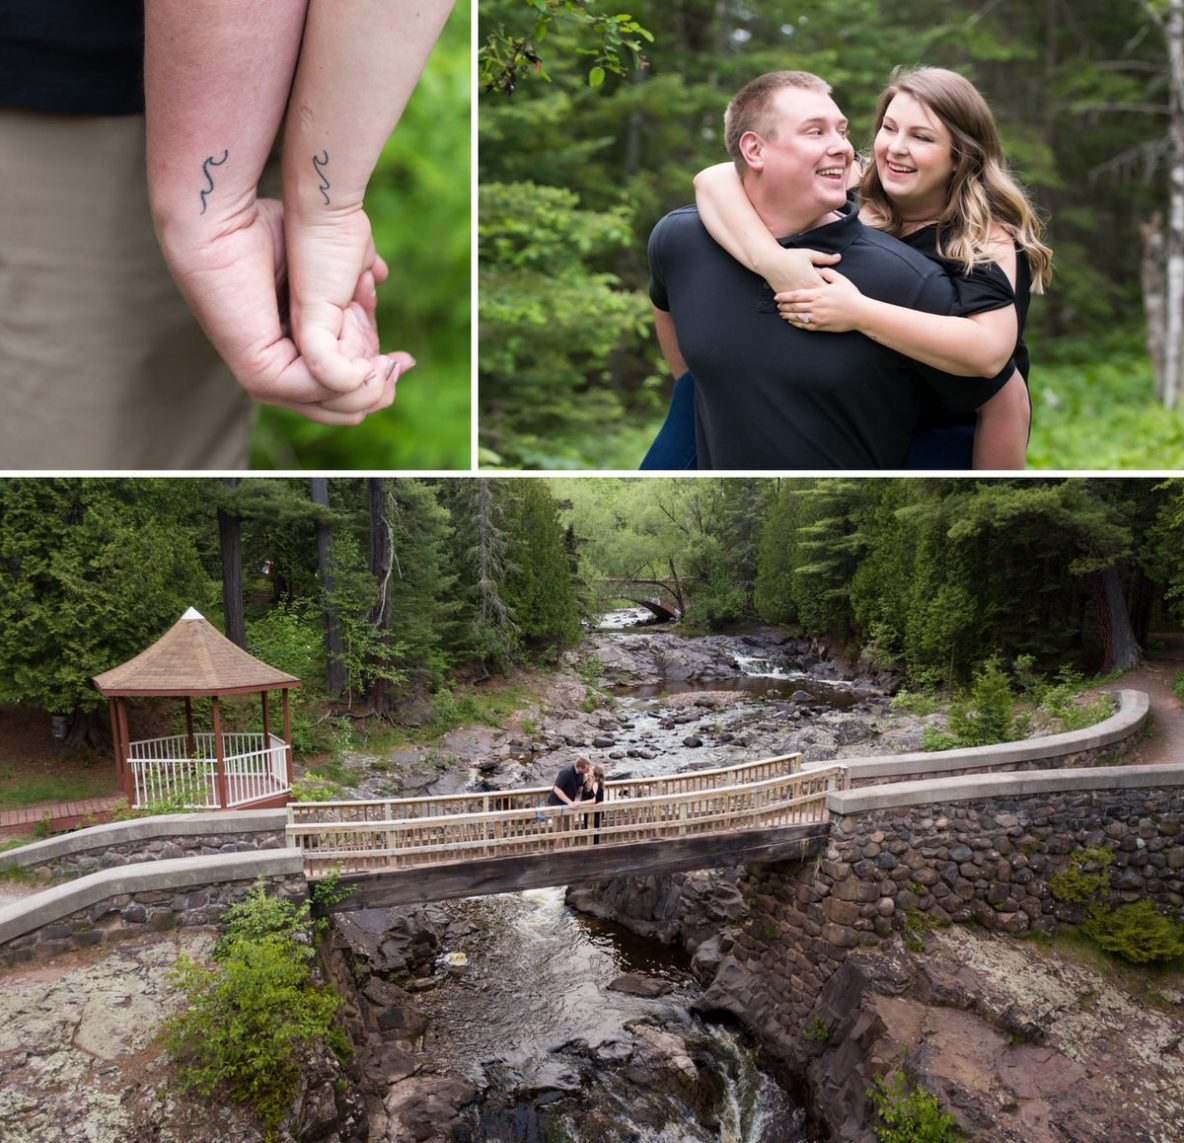 Photos of the engaged couple outside in nature with river in background.